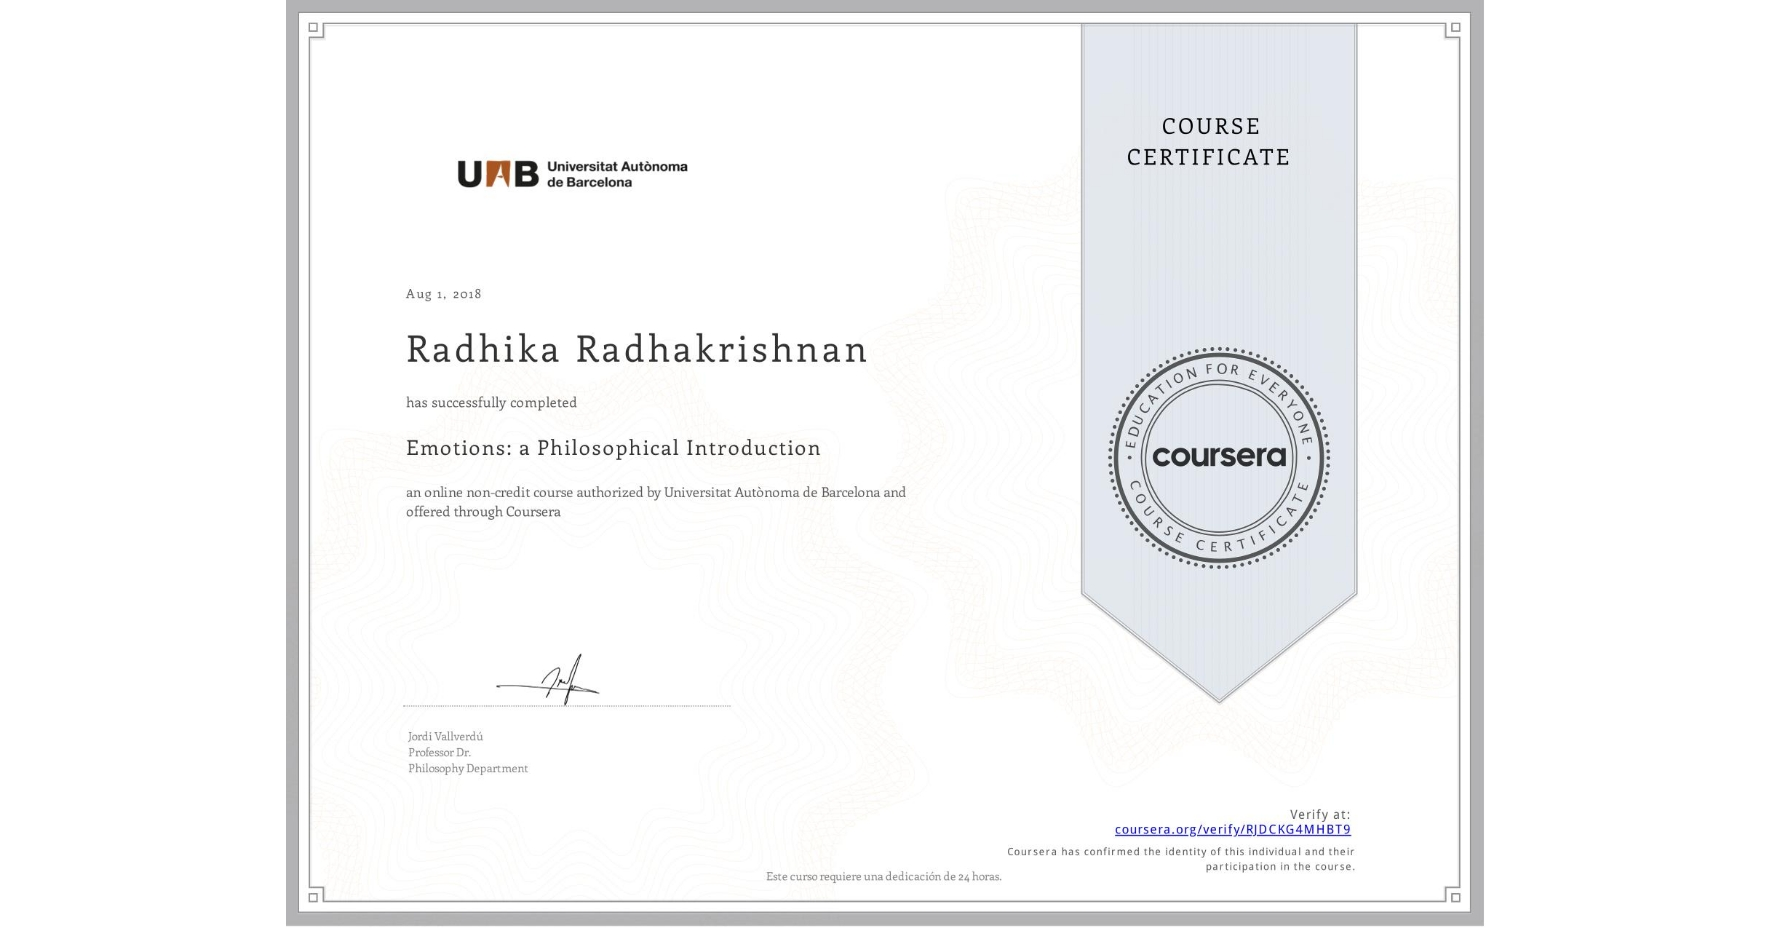 View certificate for Radhika Radhakrishnan, Emotions: a Philosophical Introduction, an online non-credit course authorized by Universitat Autònoma de Barcelona and offered through Coursera